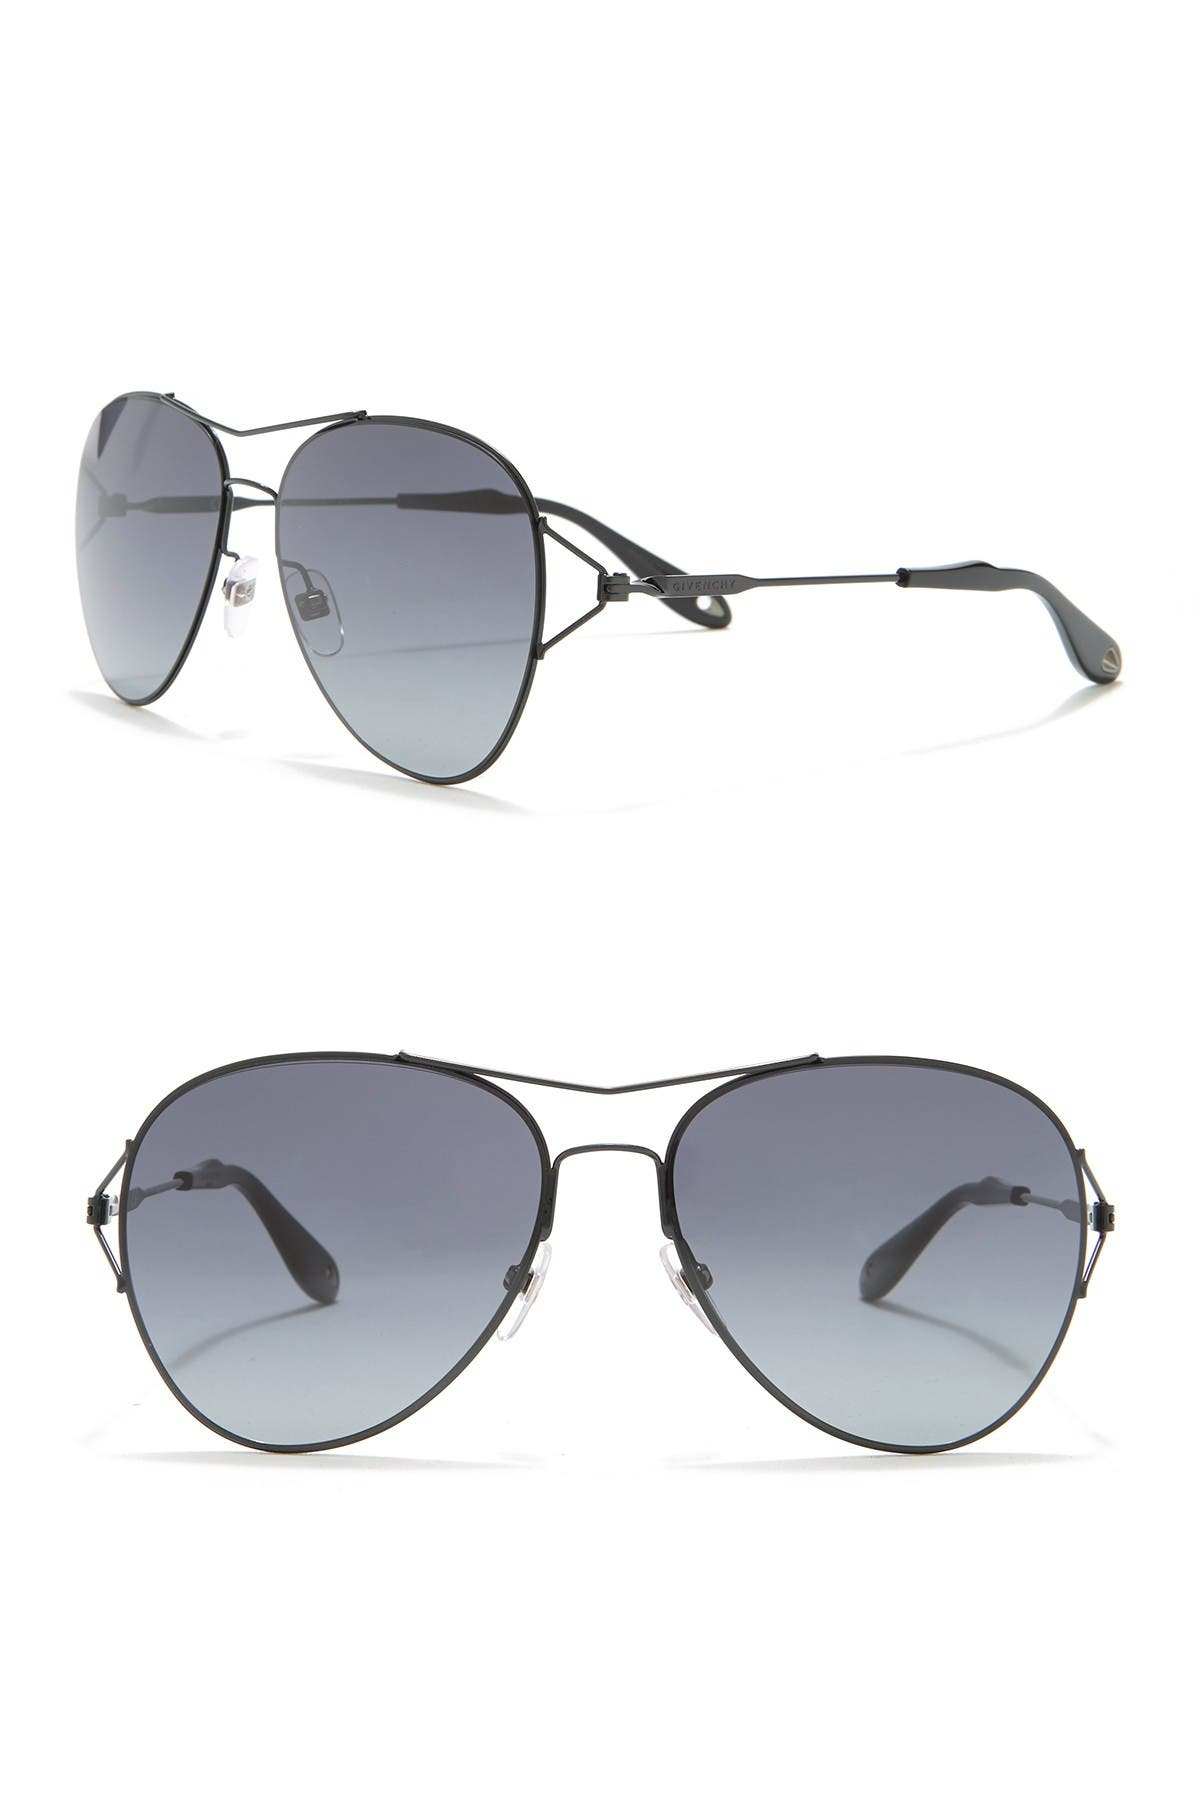 Image of Givenchy 56mm Aviator Sunglasses